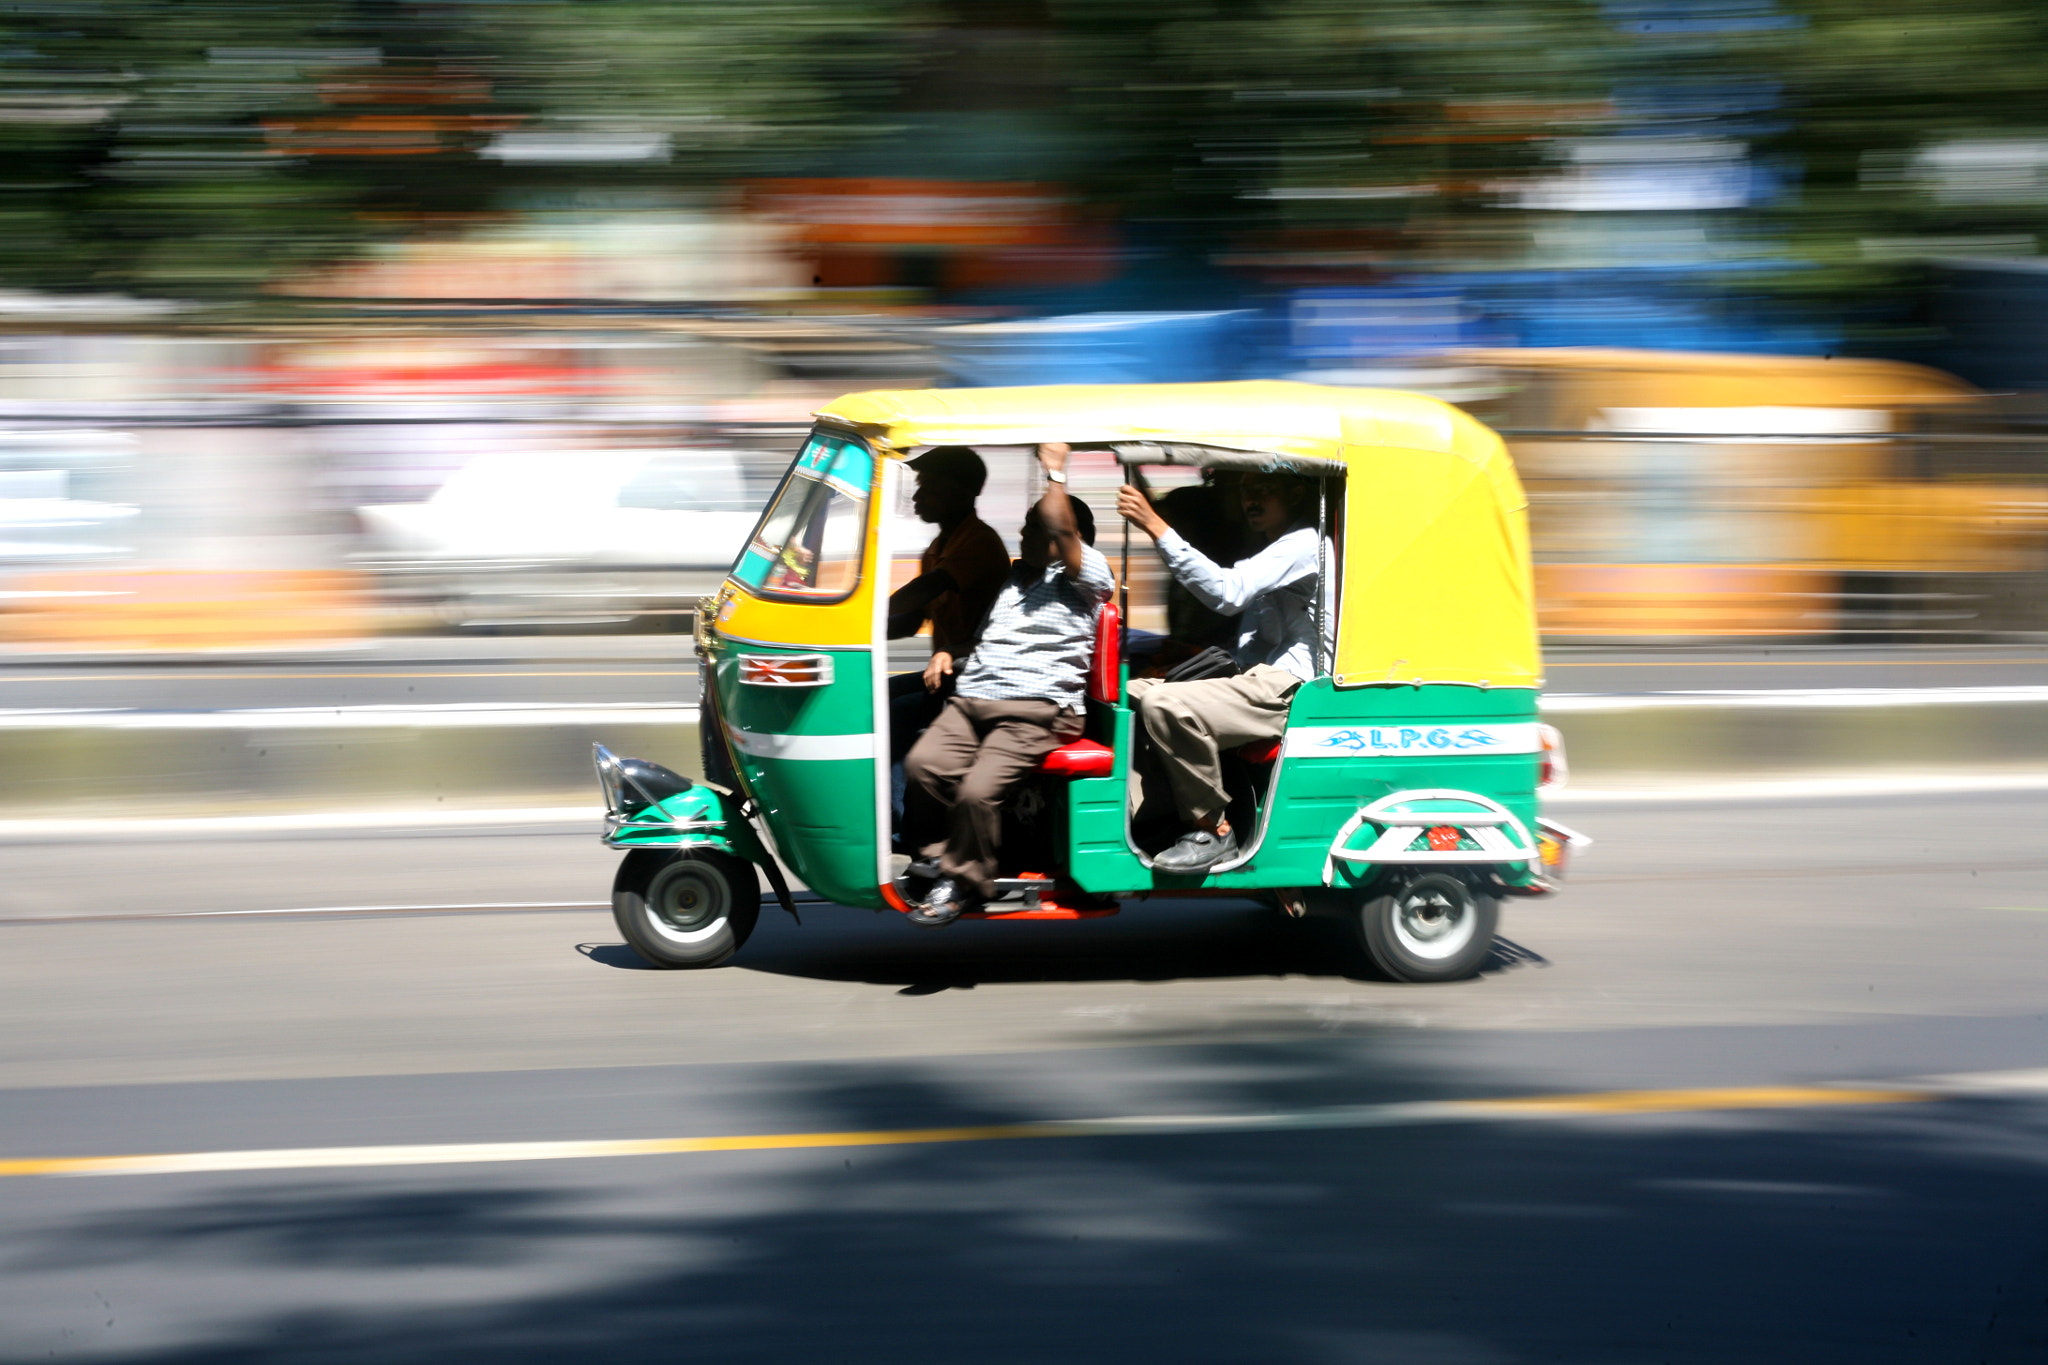 Photograph Tuk Tuk by Andrea Gherardi on 500px